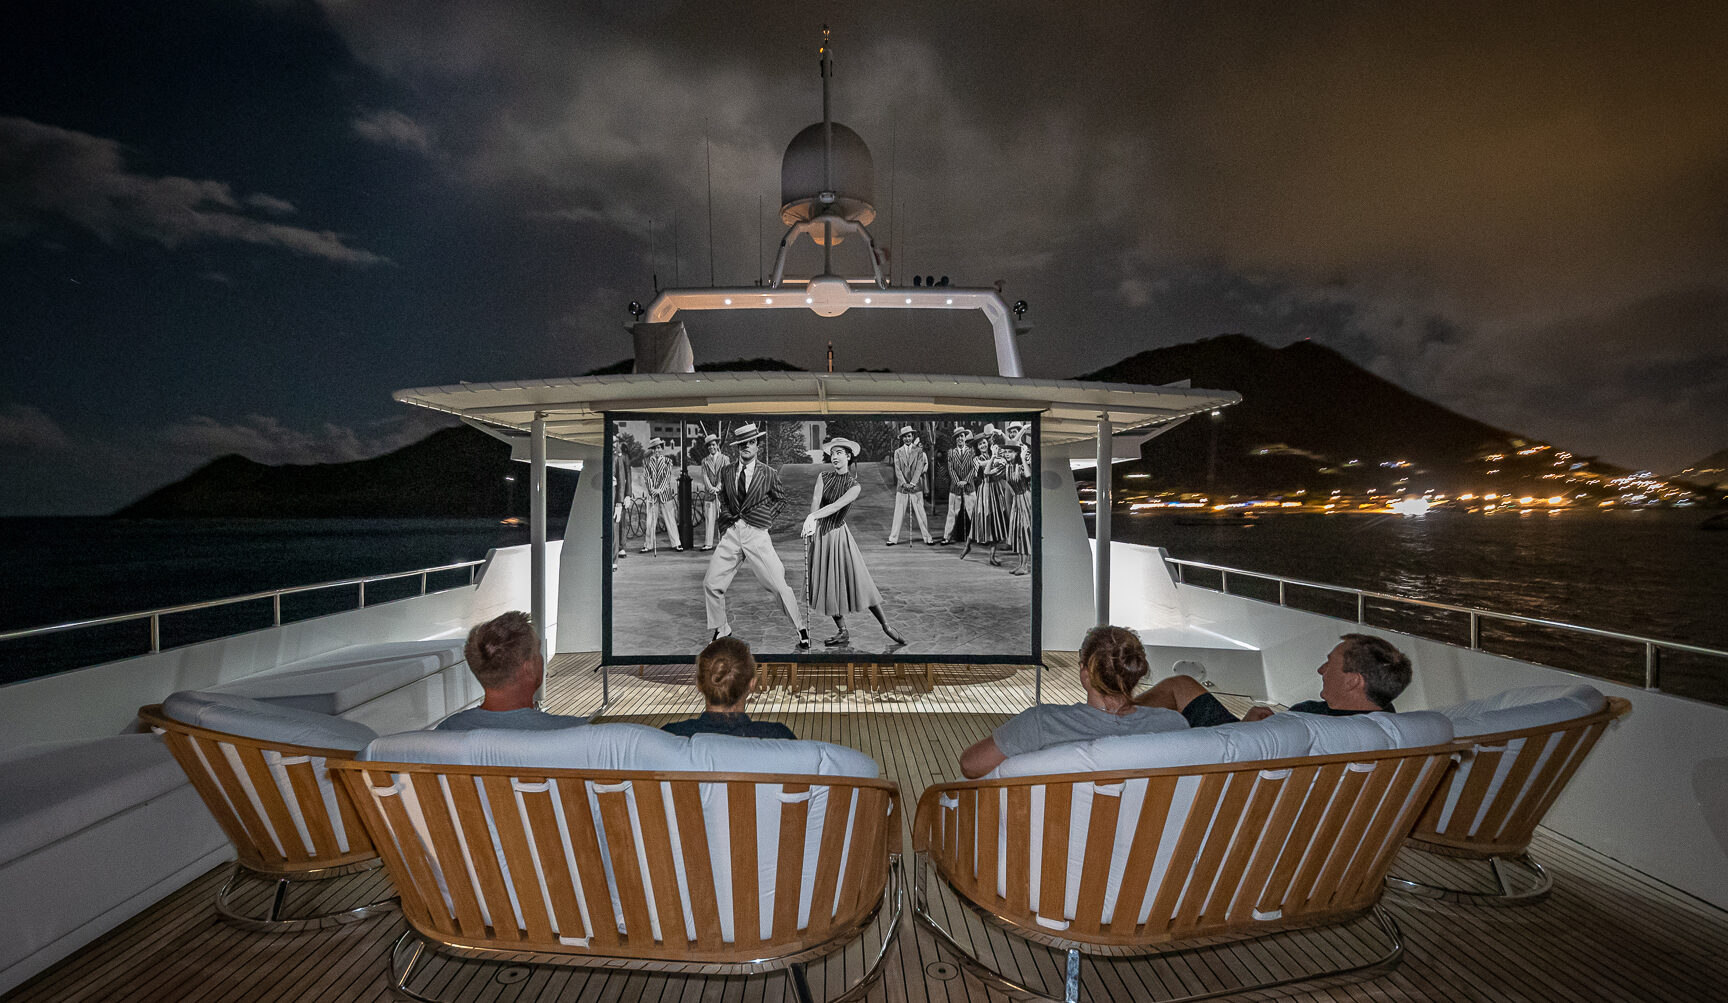 People watching a black and white movie on a projector screen on charter yacht LIONSHARE